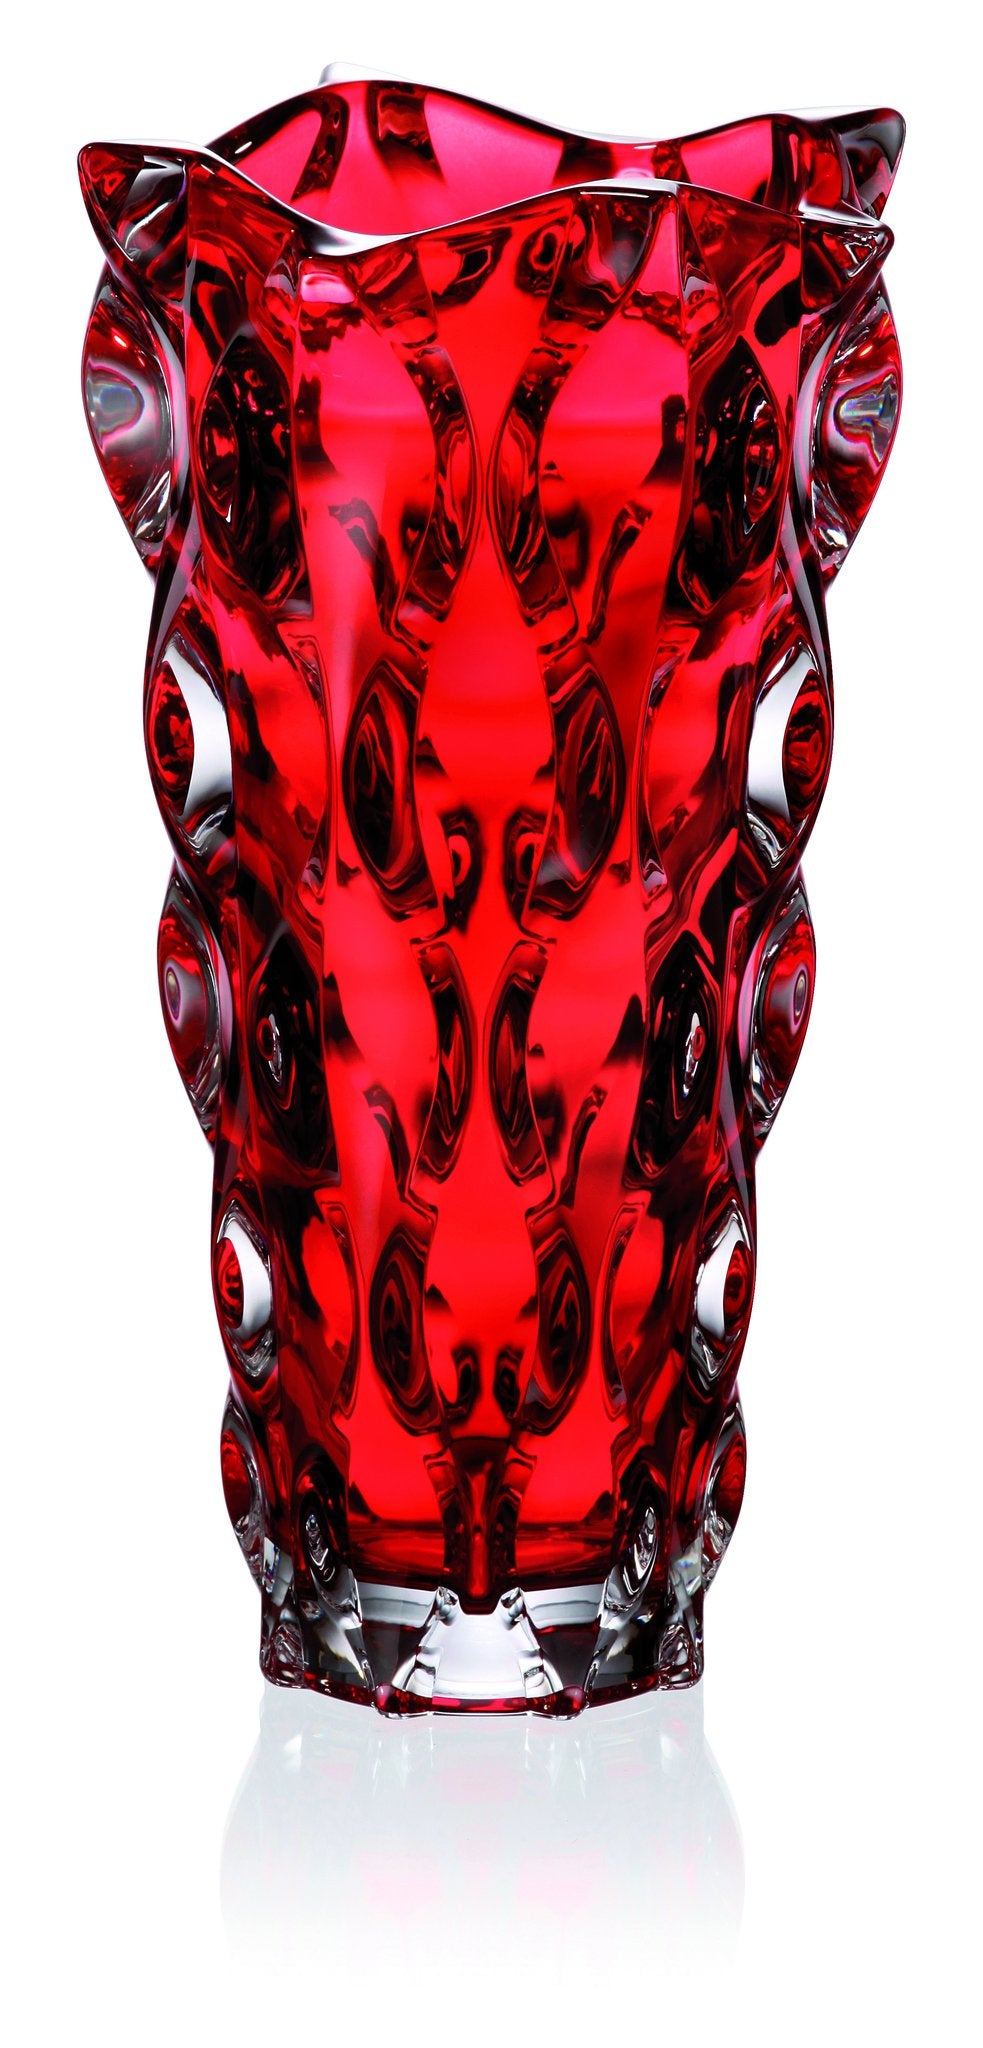 Red crystal glass vase & bowl set